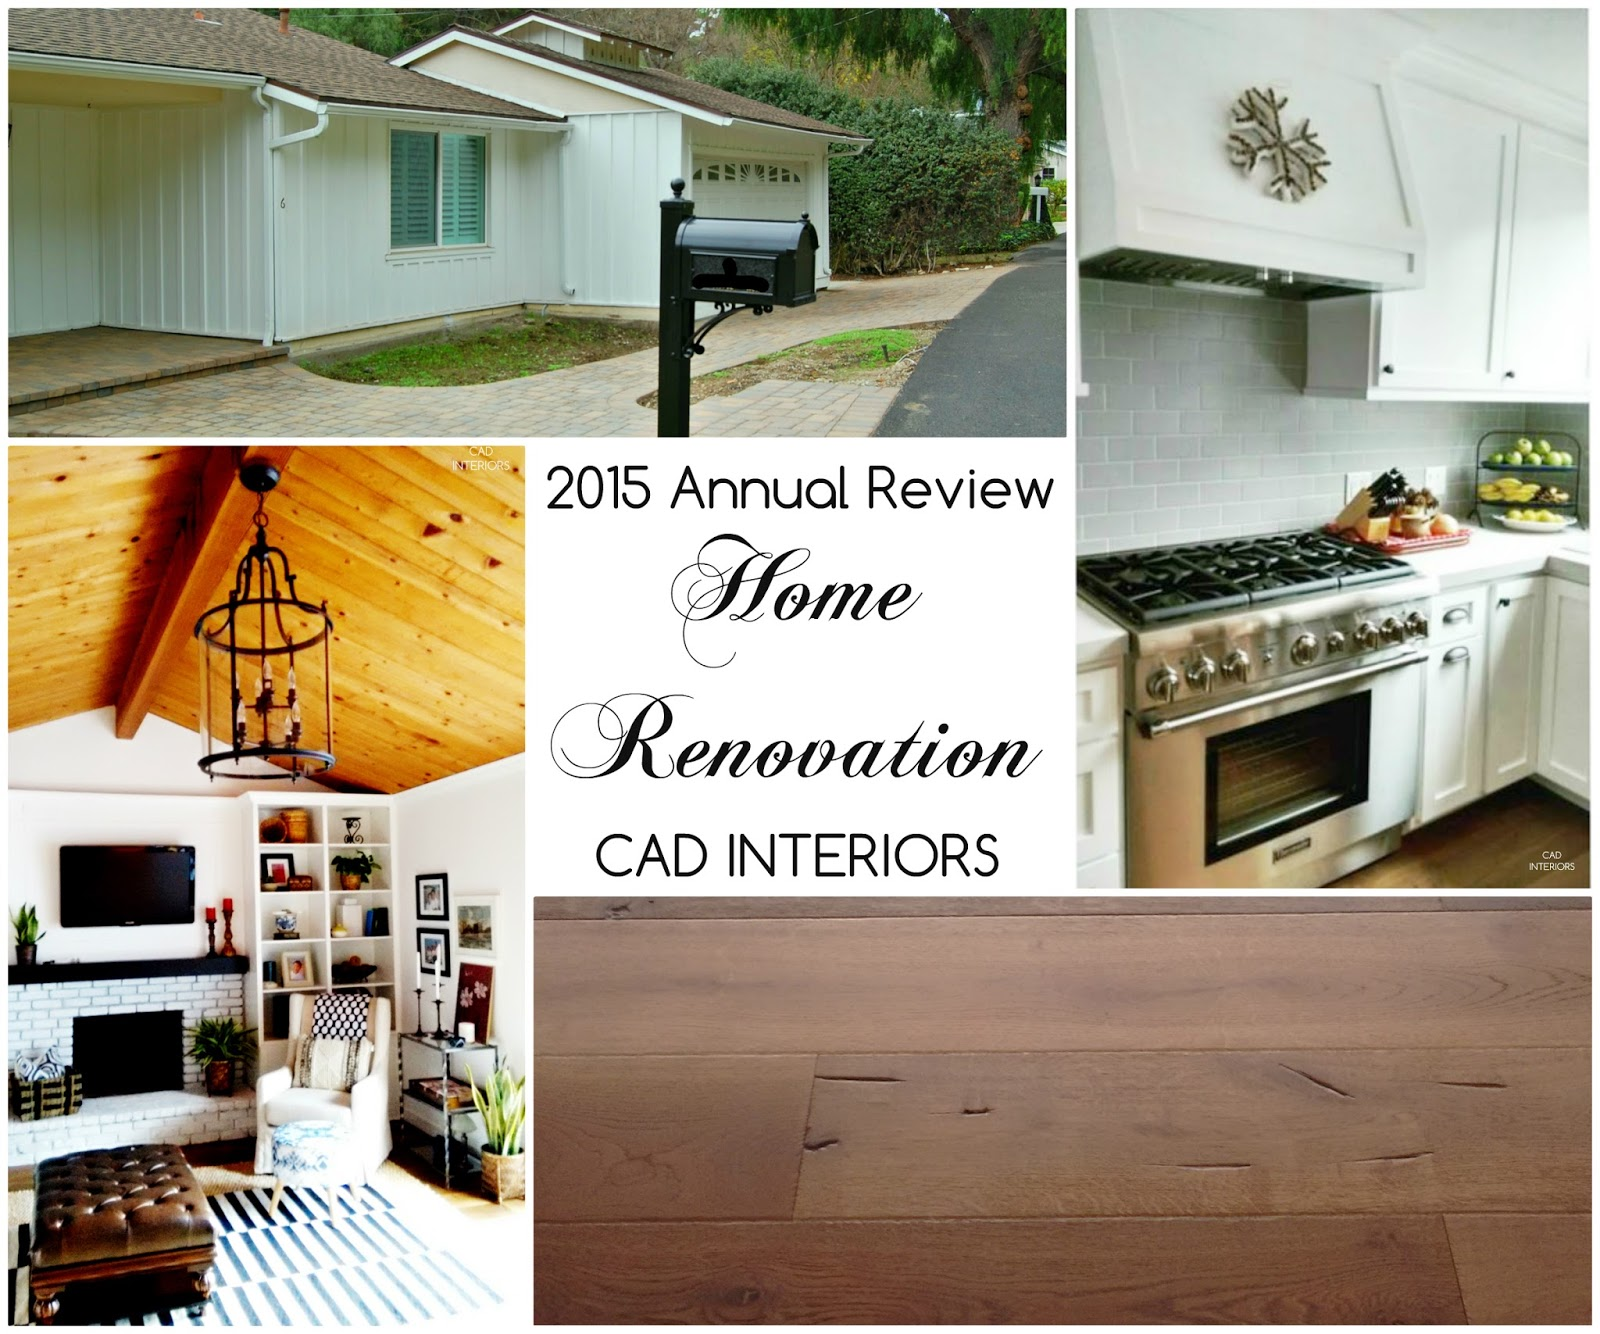 home improvement projects CAD INTERIORS home renovation